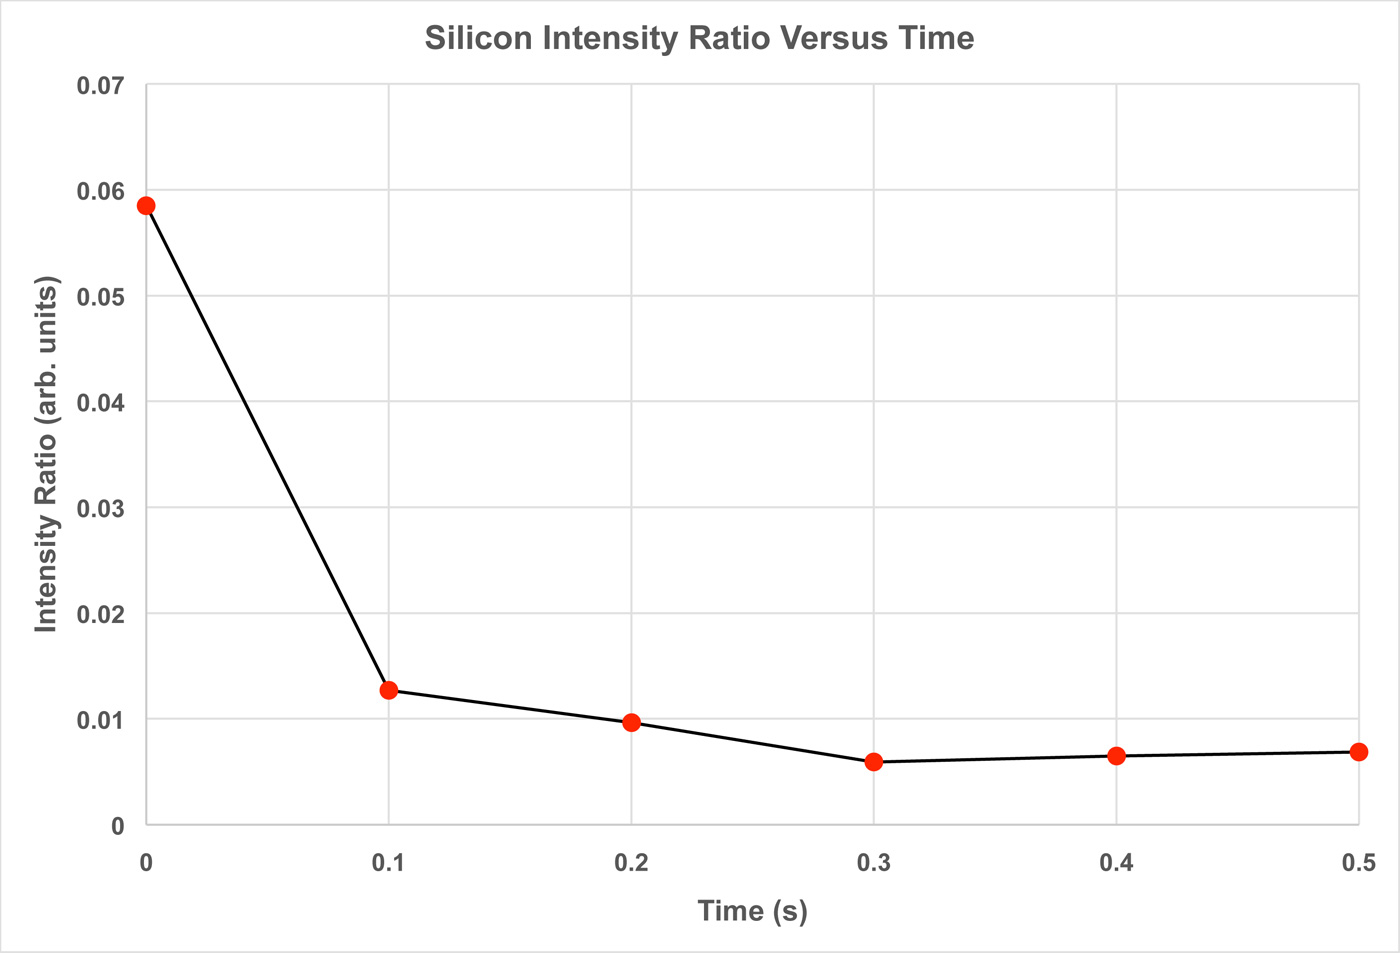 Silicon Intensity Ratio Versus Time Plot